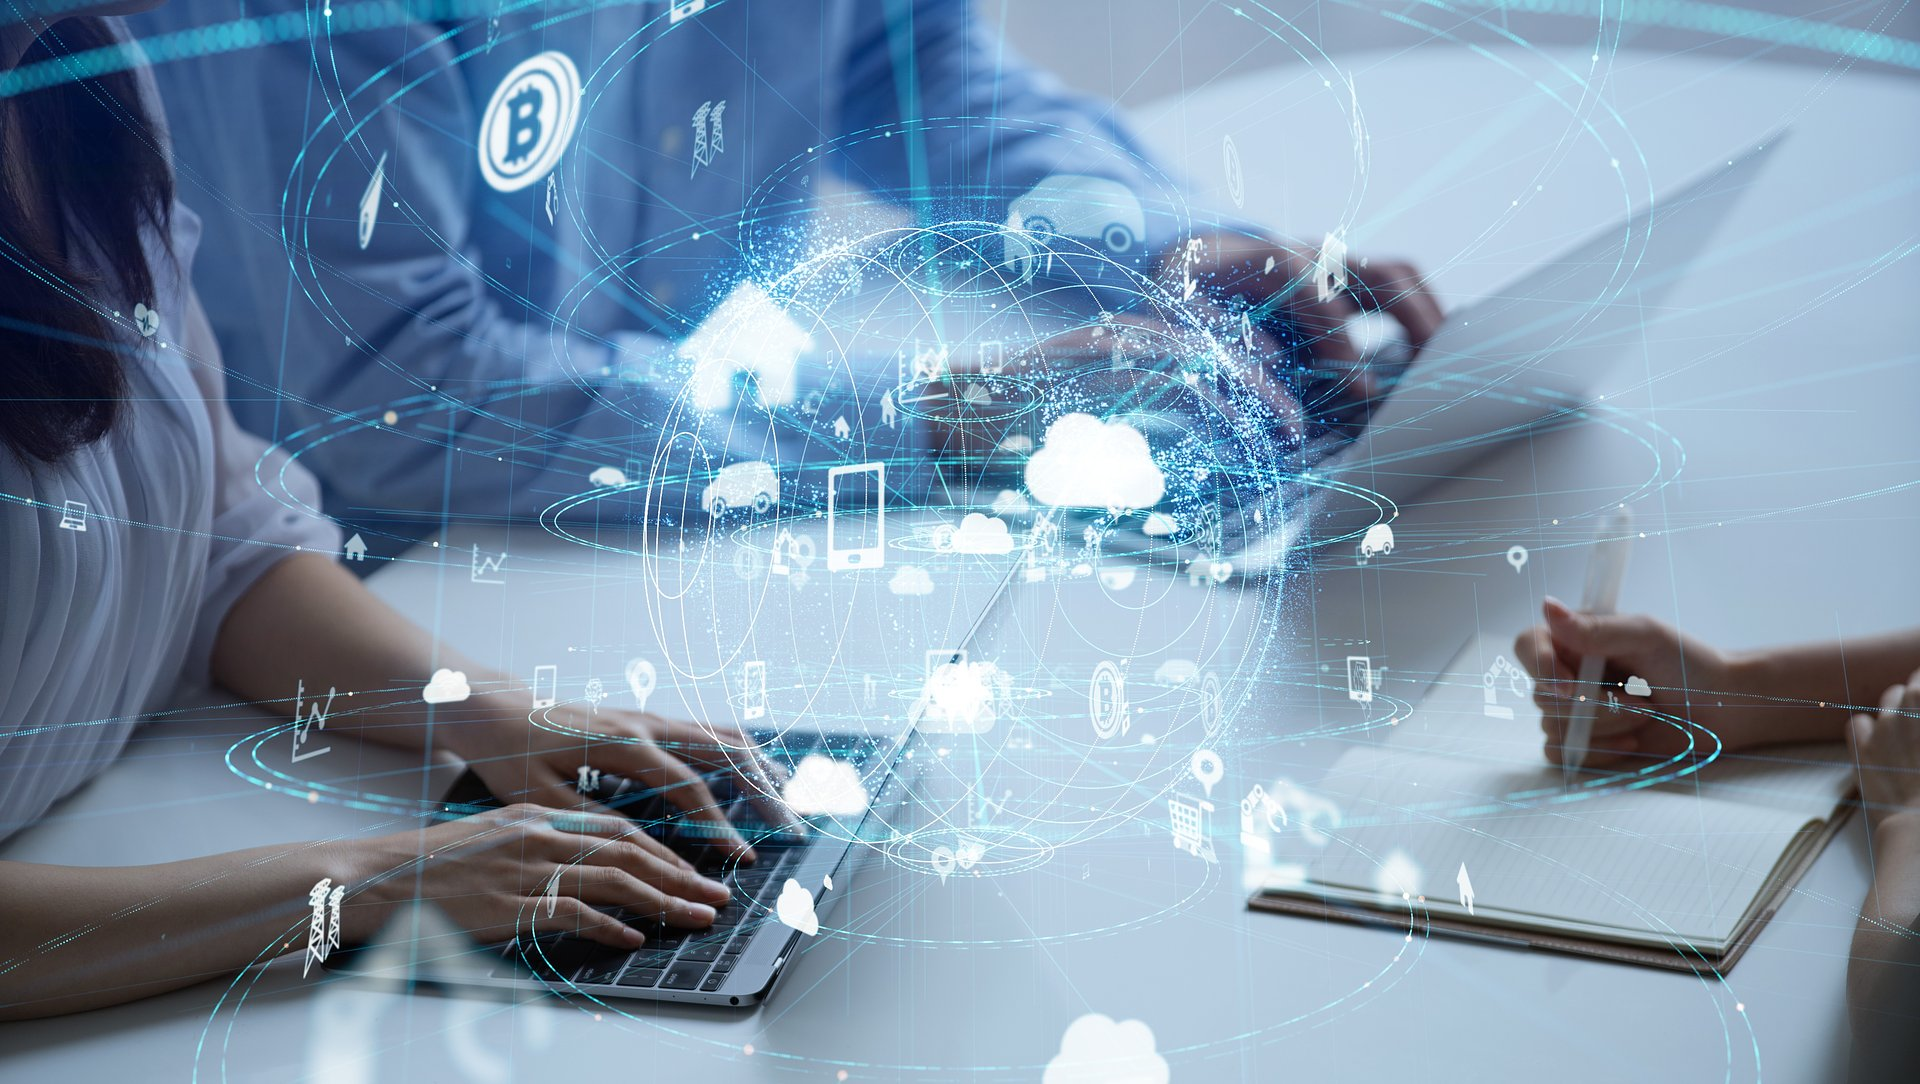 Citi Handlowy integrates banking system with Comarch ERP Optima and Comarch ERP XL through CitiConnect API